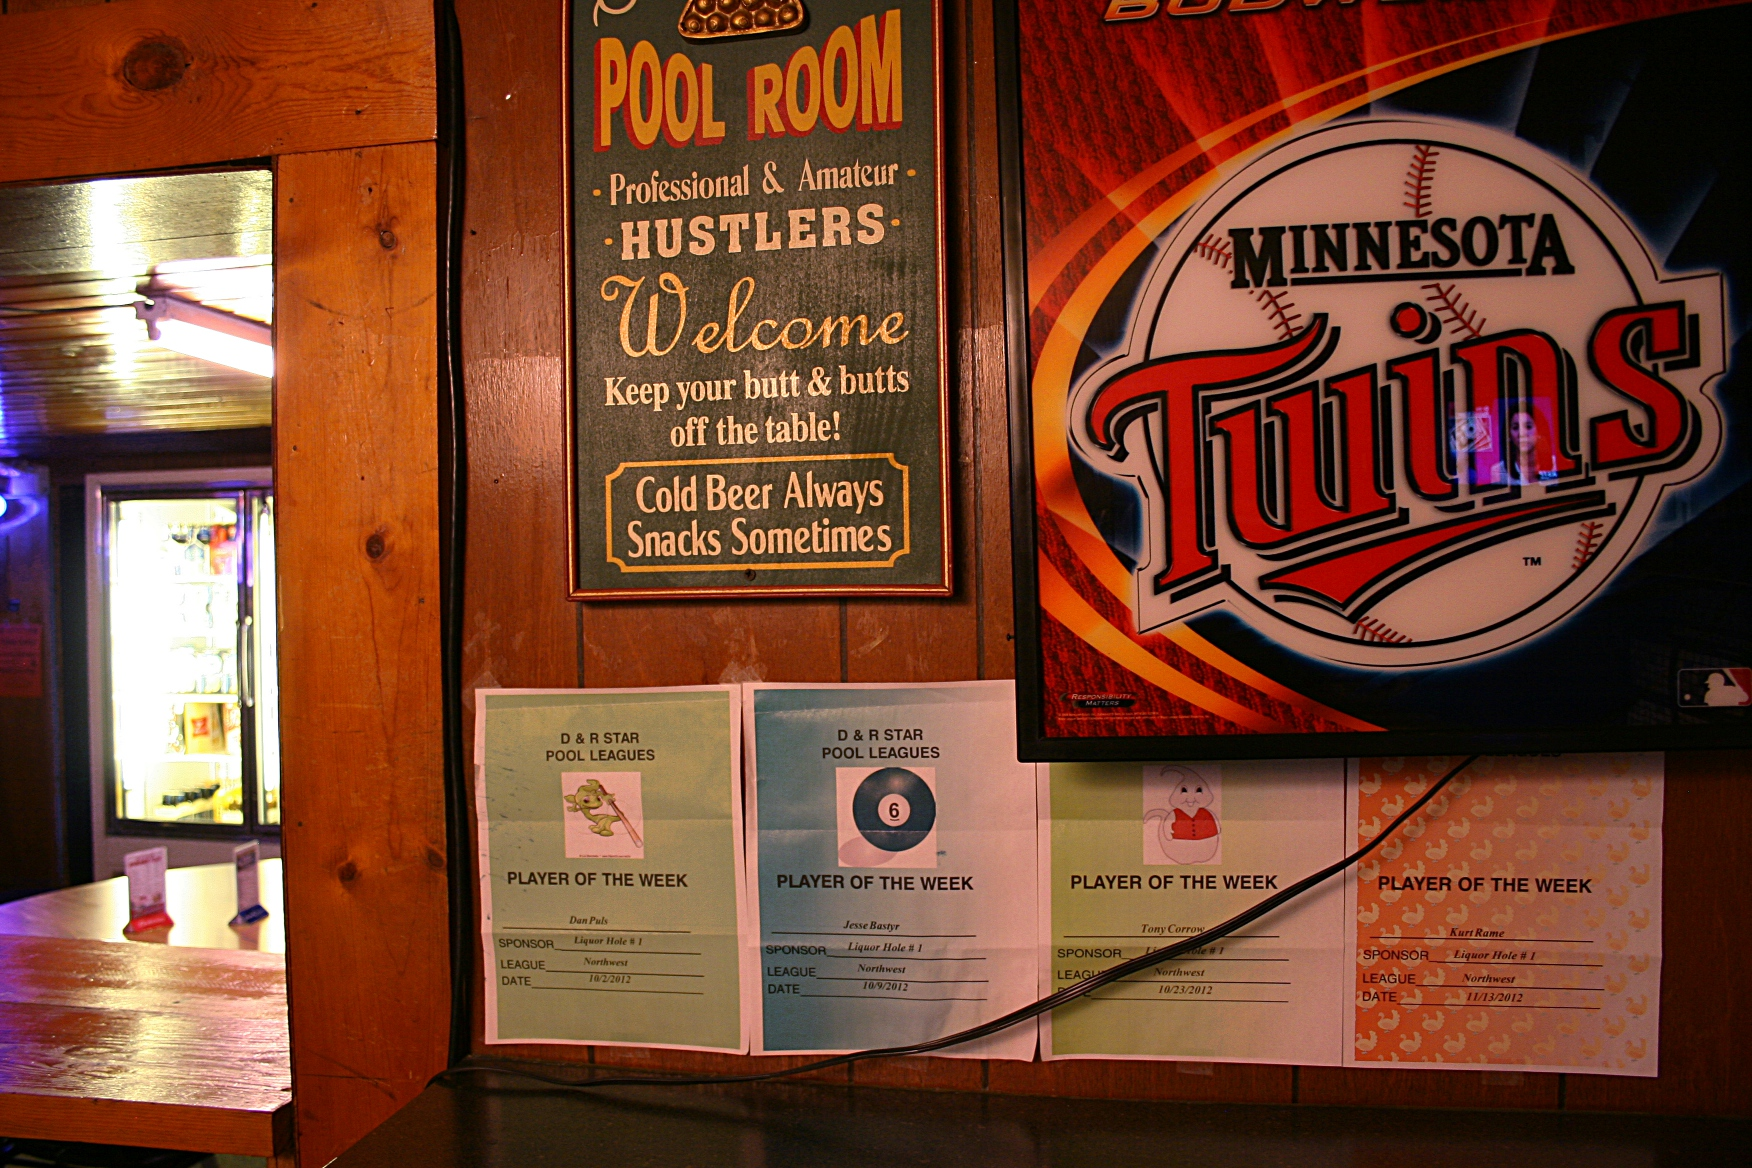 Be sure to follow the bar's pool rules.